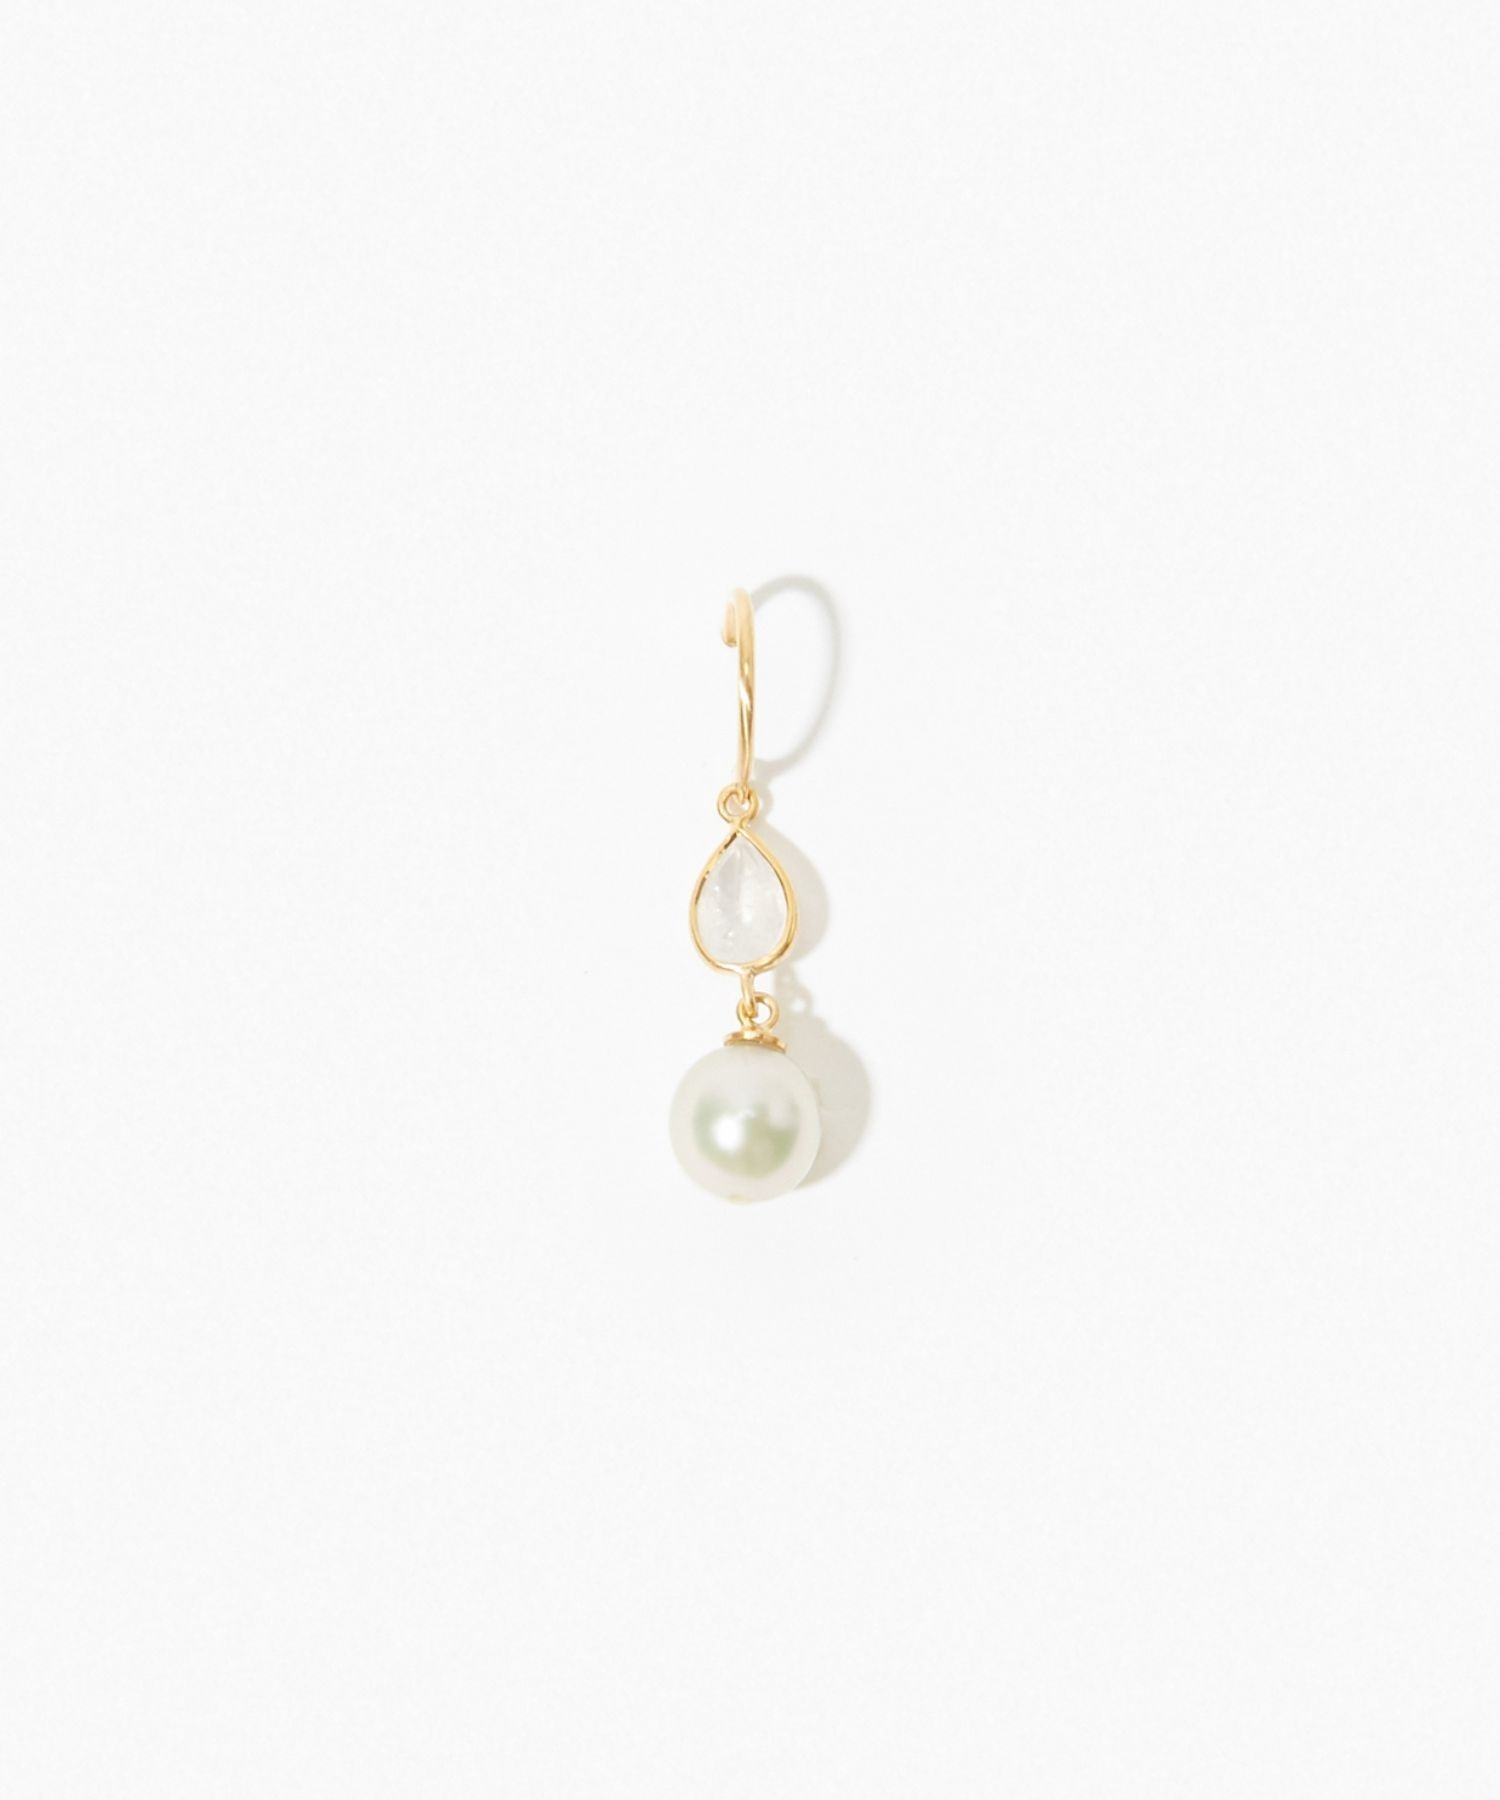 [philia] K10 akoya and pear-shaped rainbow moonstone pierced earring